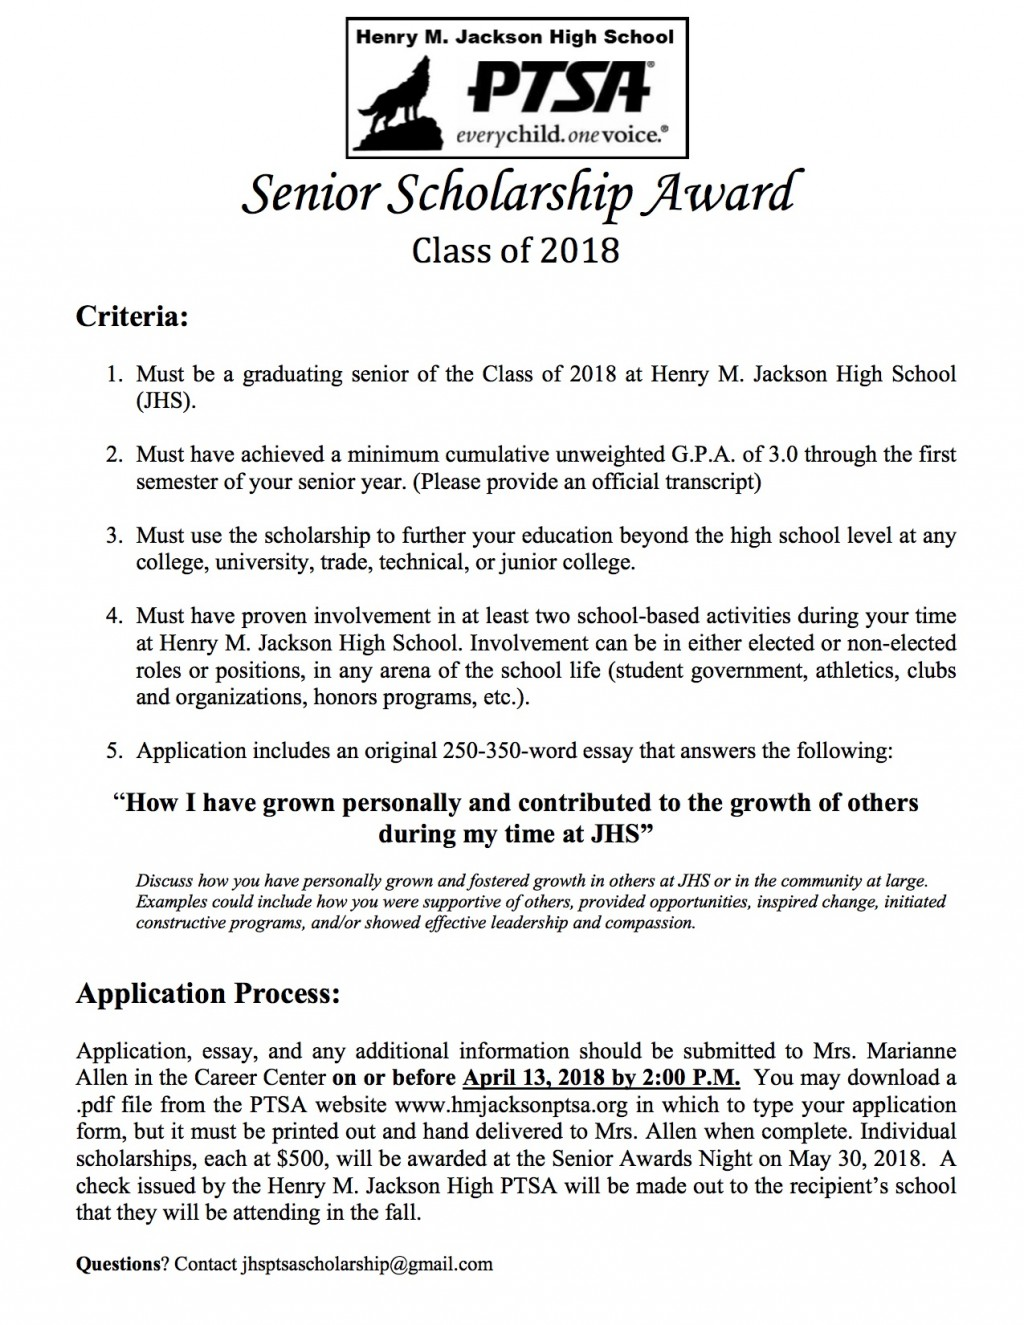 004 No Essay Scholarships For College Students Senior Henry M Jackson Ptsa Scholarship Application 201 Awful 2019 Large